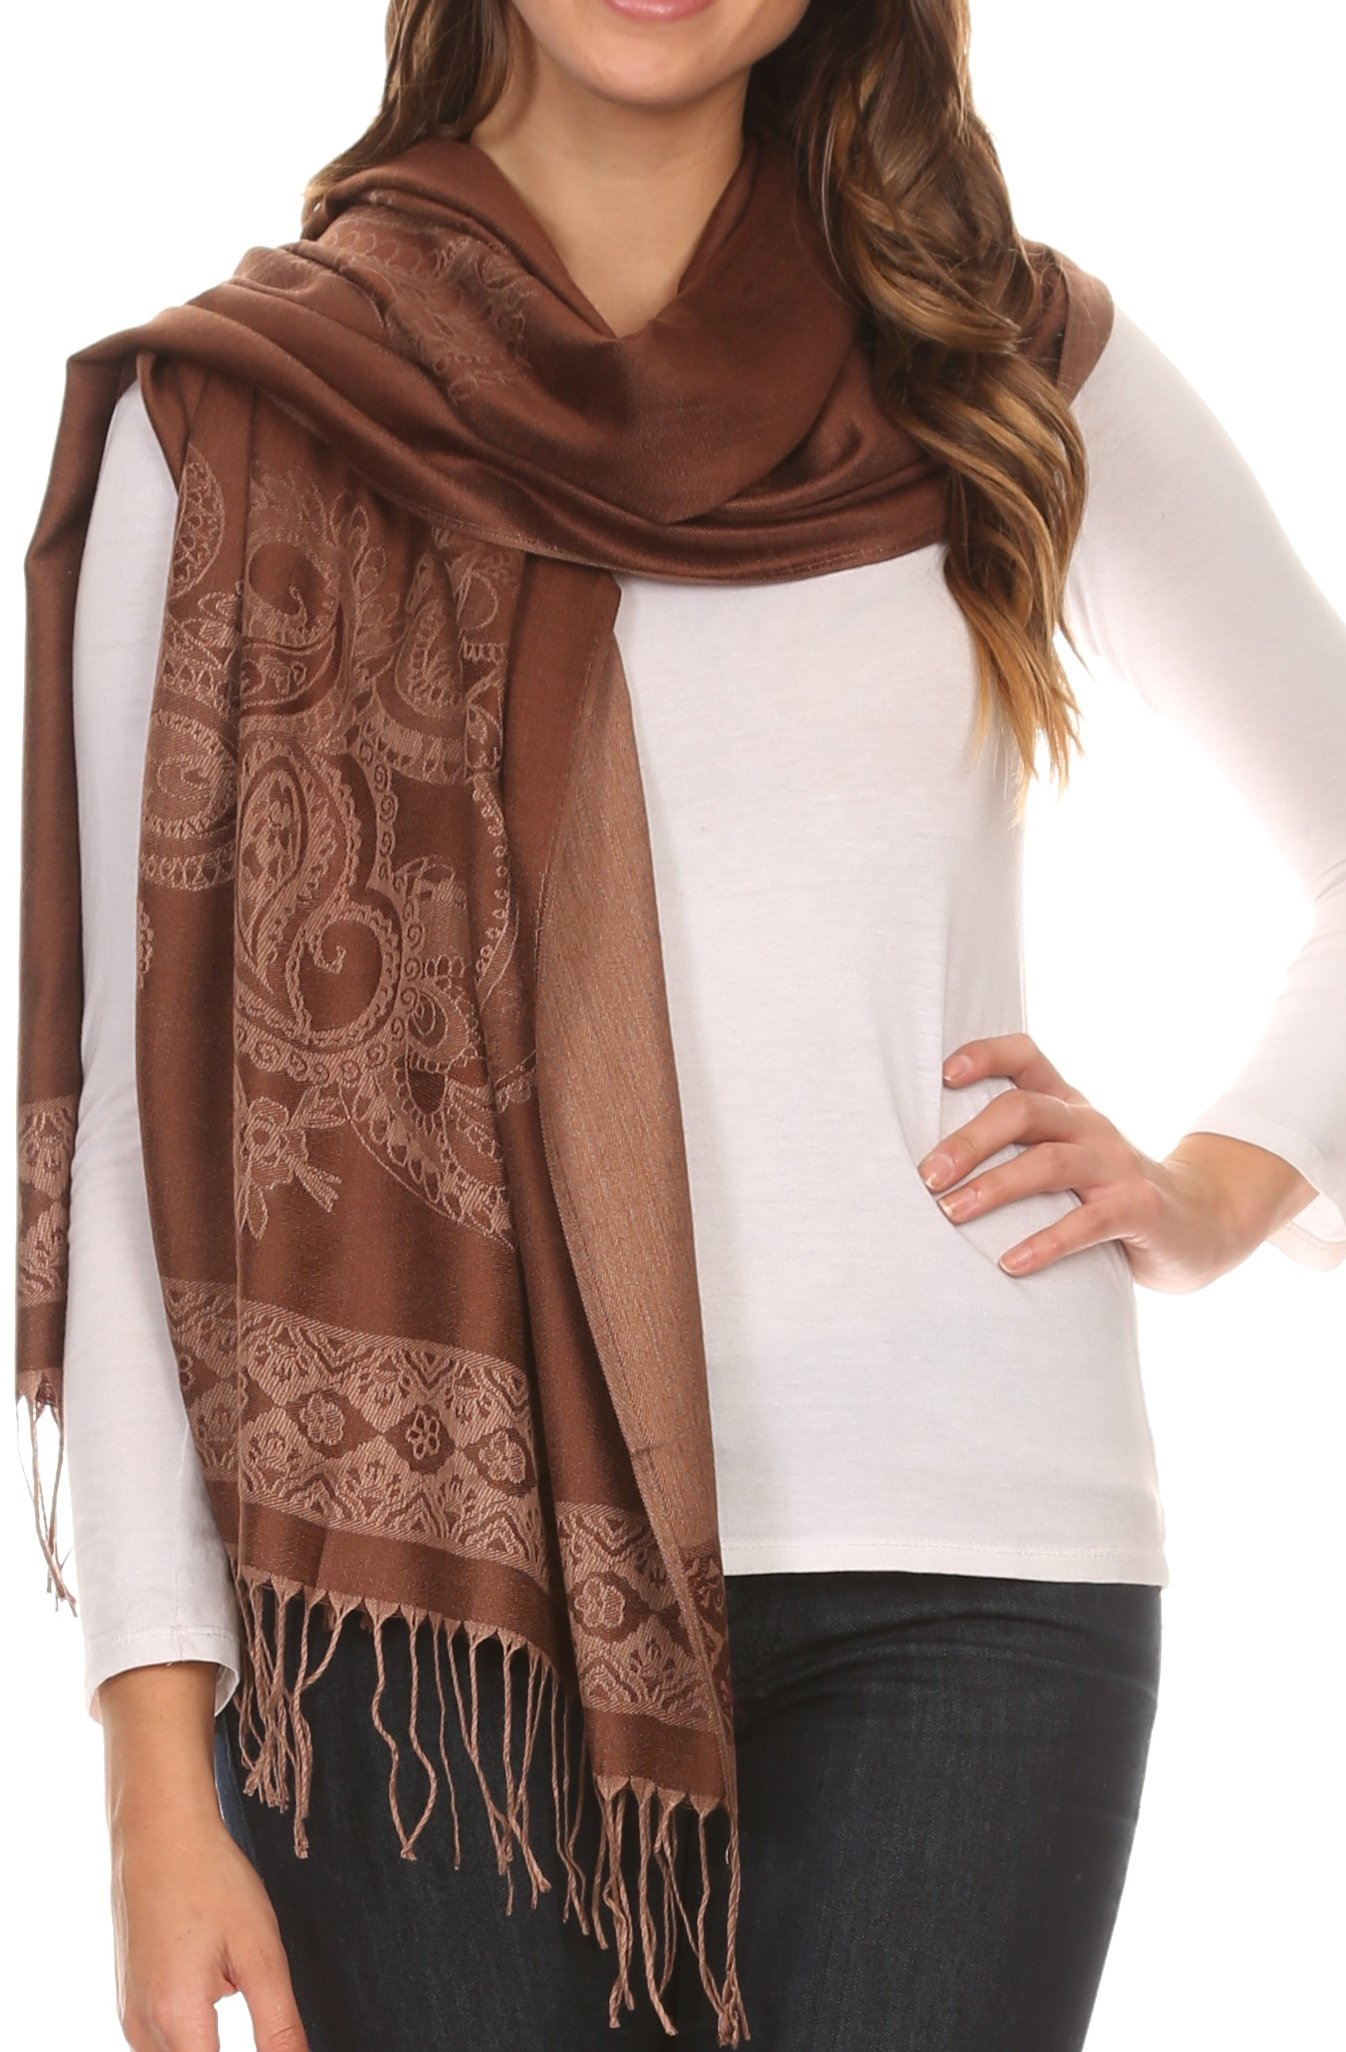 Sakkas 16114 - Seily Long Extra Wide Fringe Paisley Patterned Pashmina Shawl/Scarf - Brown/Golden - OS